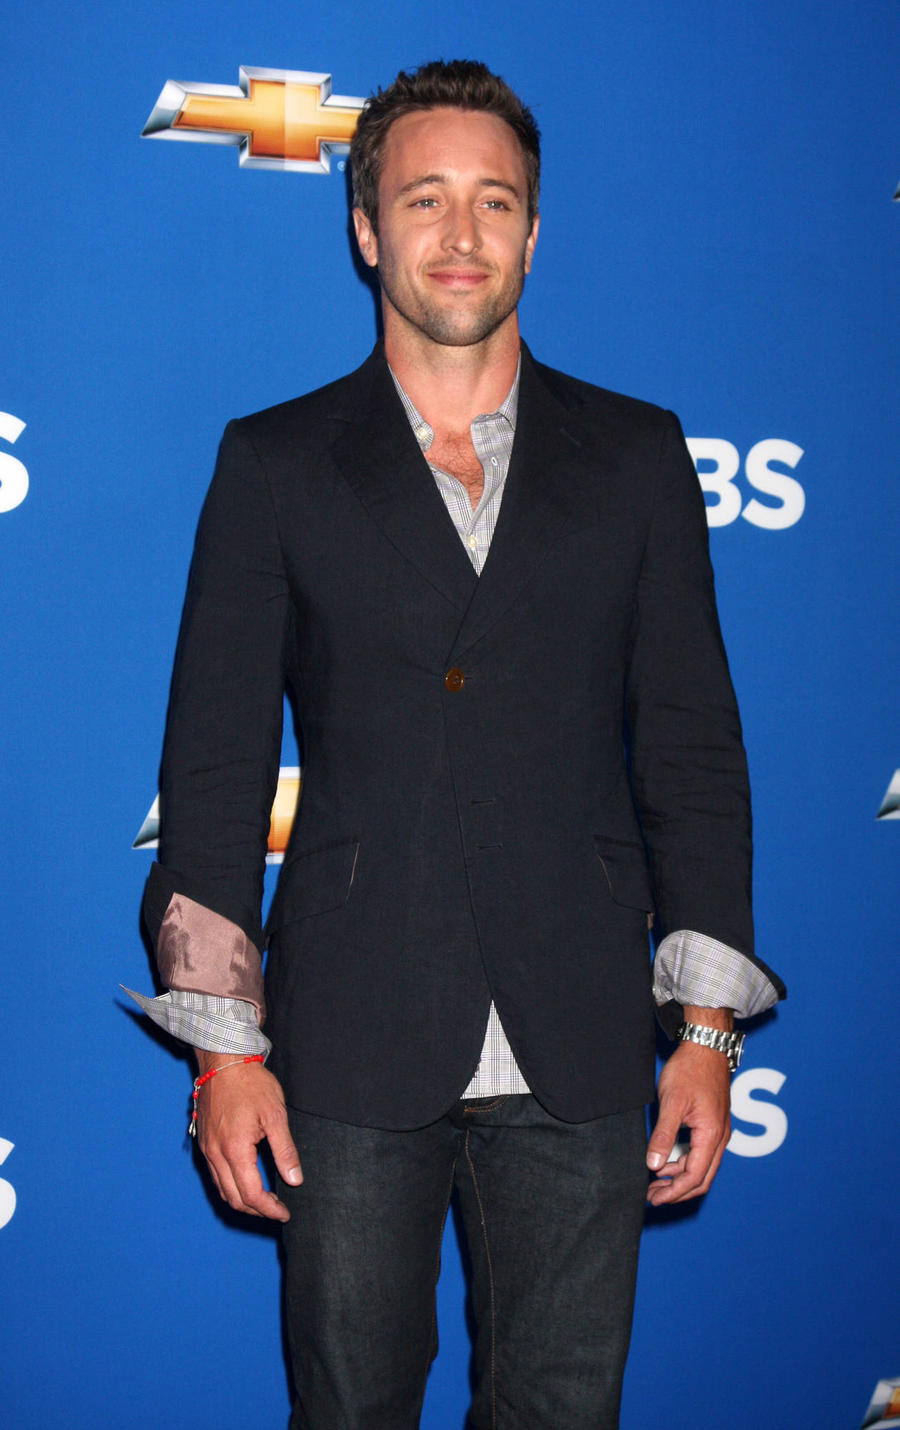 Injured Hawaii Five-0 Star Alex O'loughlin Planning Show Exit In Two Years